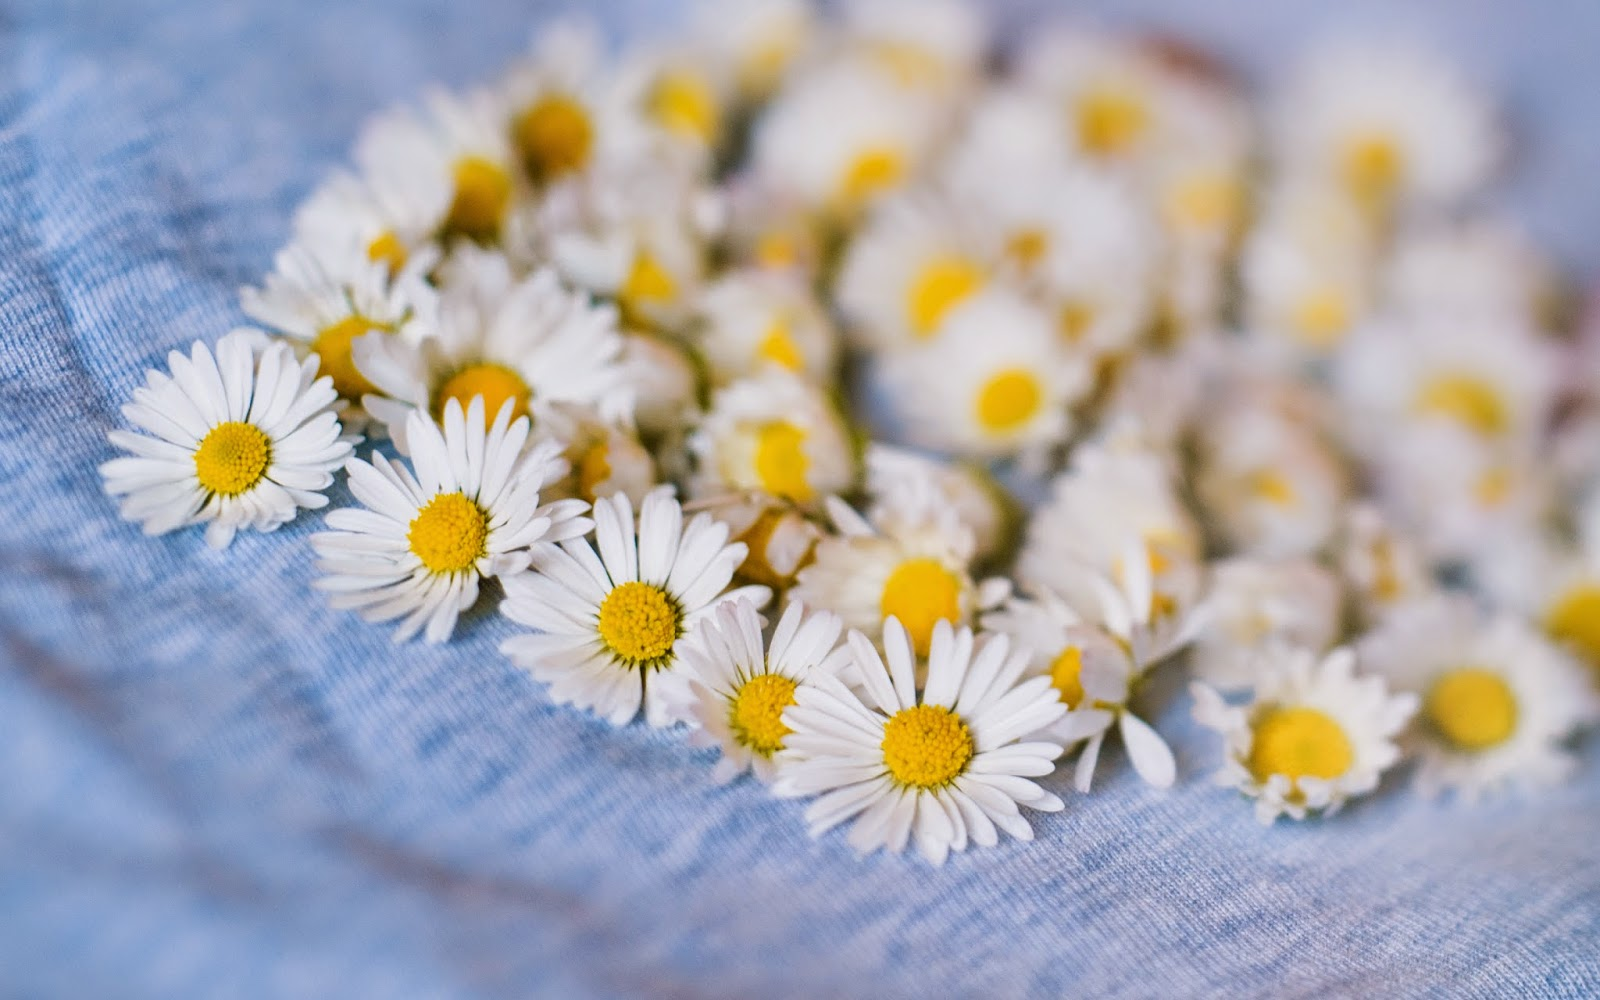 Daisy-flowers-wallpapers-for-desktop-Mac-PC.jpg